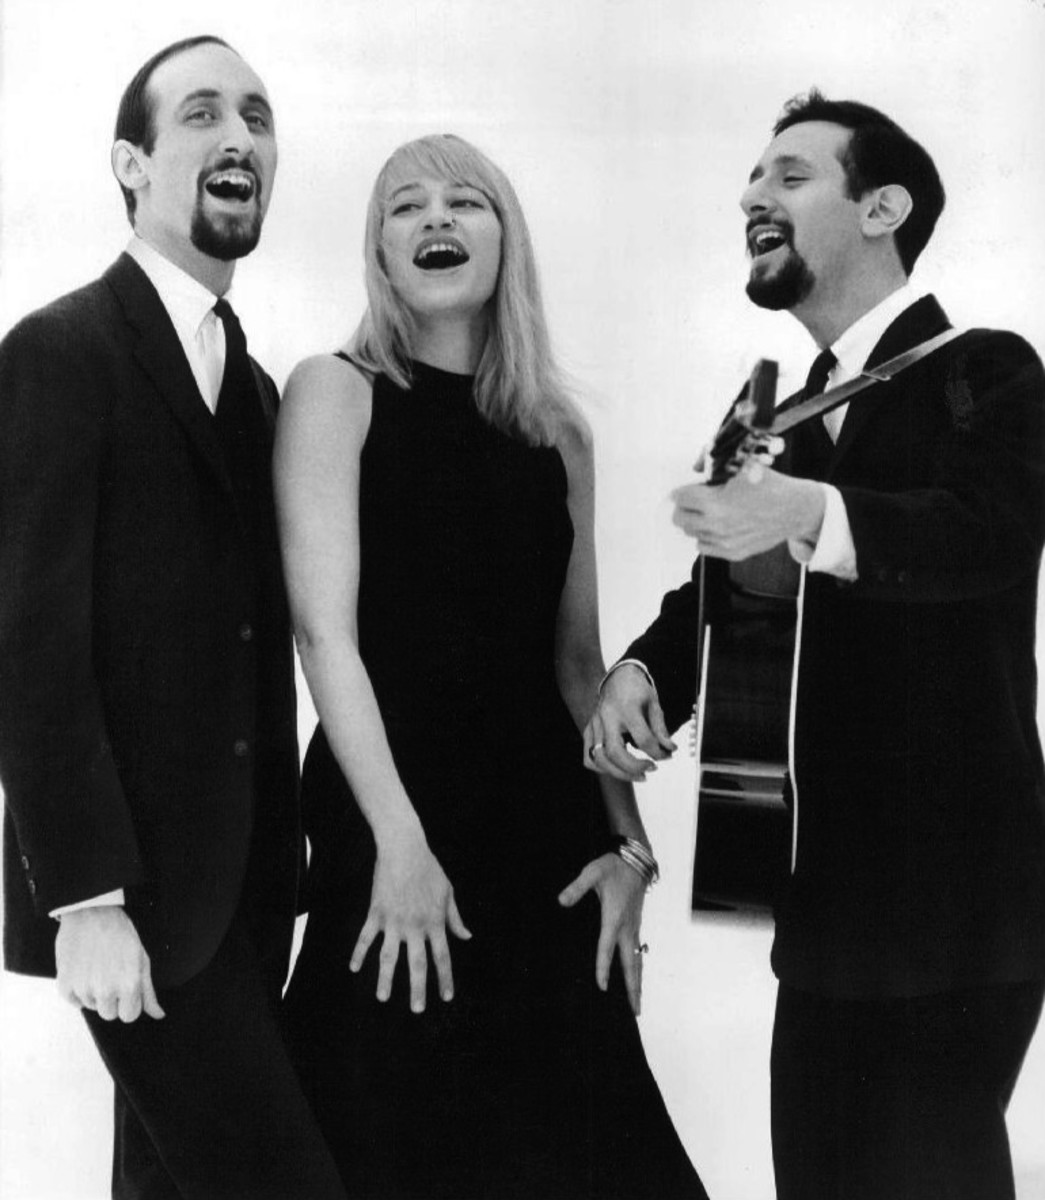 Peter Paul And Mary performing